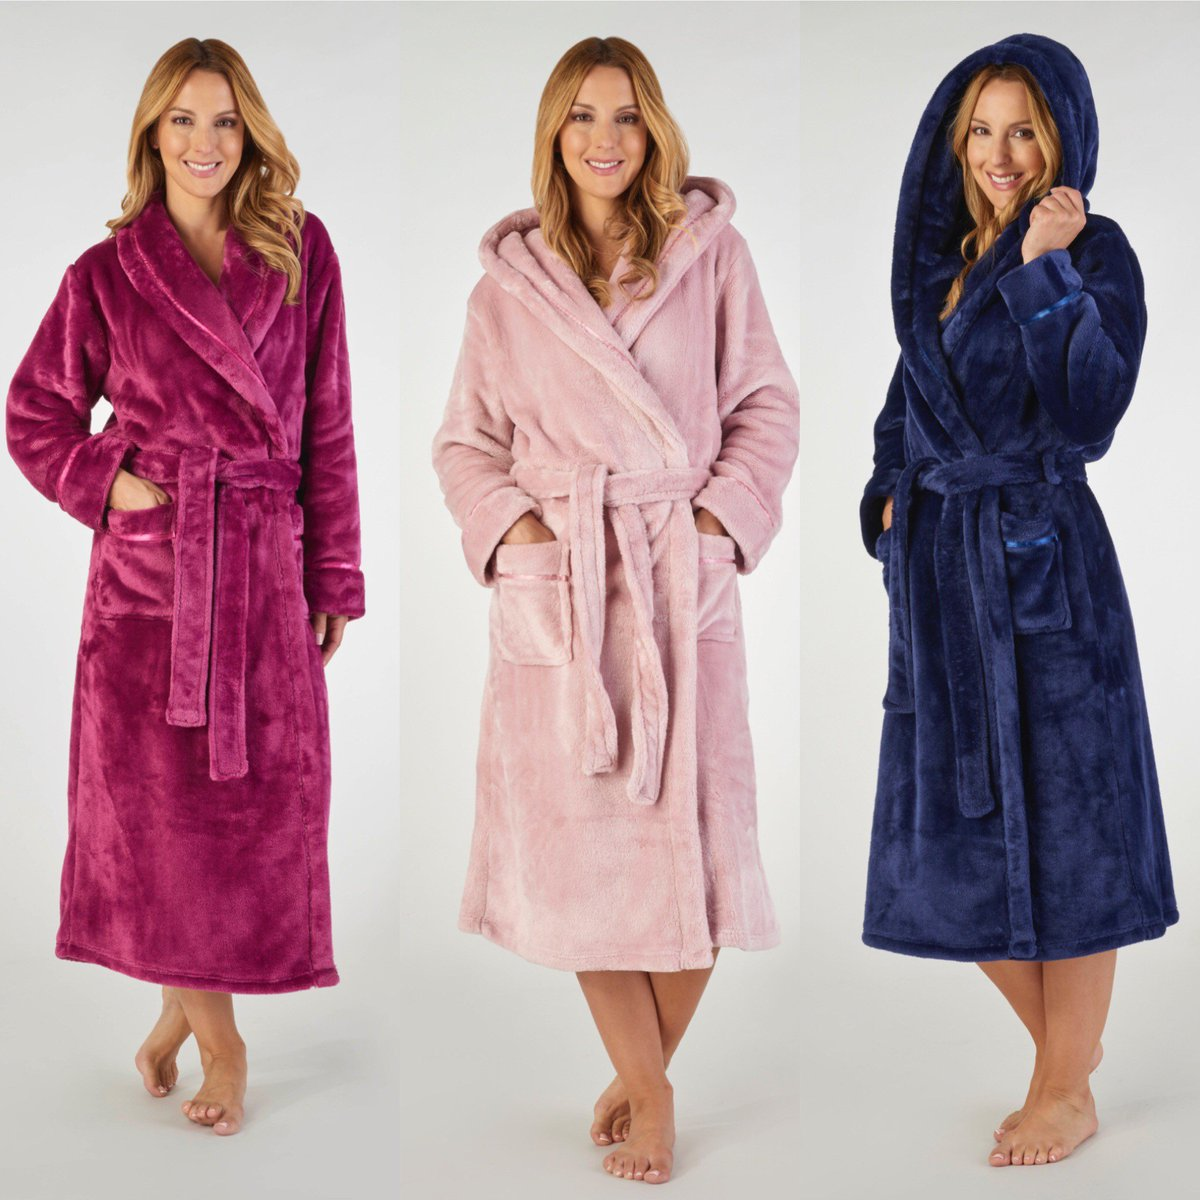 dressinggown photos and hastag